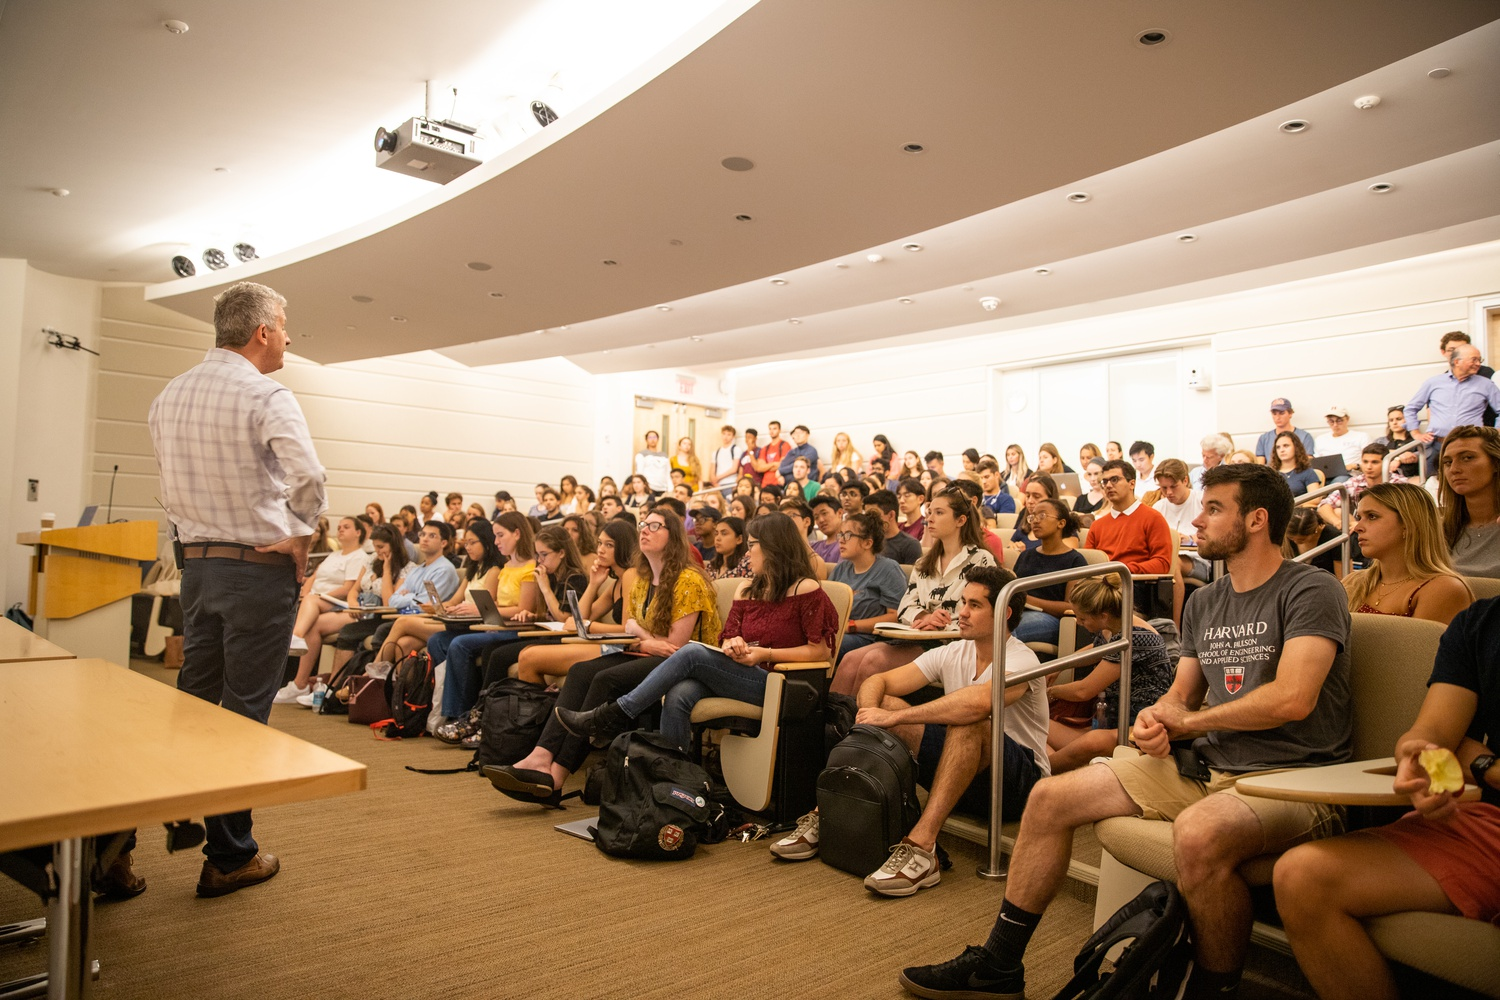 During shopping week, students are free to attend any lecture that piques their interest, often leading to overcrowding.  After the novel coronavirus outbreak, exceeding occupancies of lecture halls may be a potential concern.